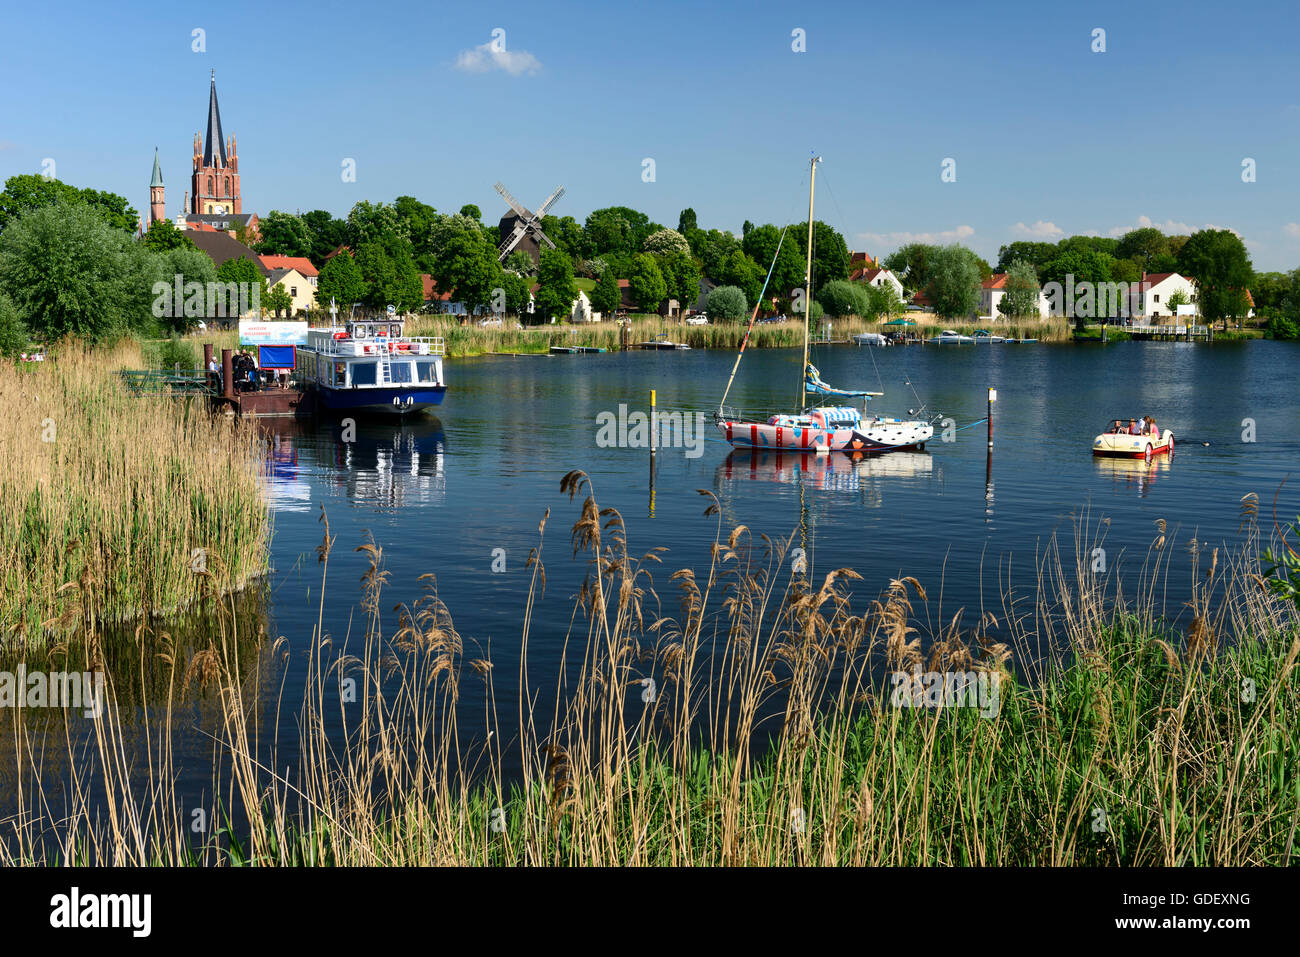 Werder To Havel Stock Photos Werder To Havel Stock Images Alamy